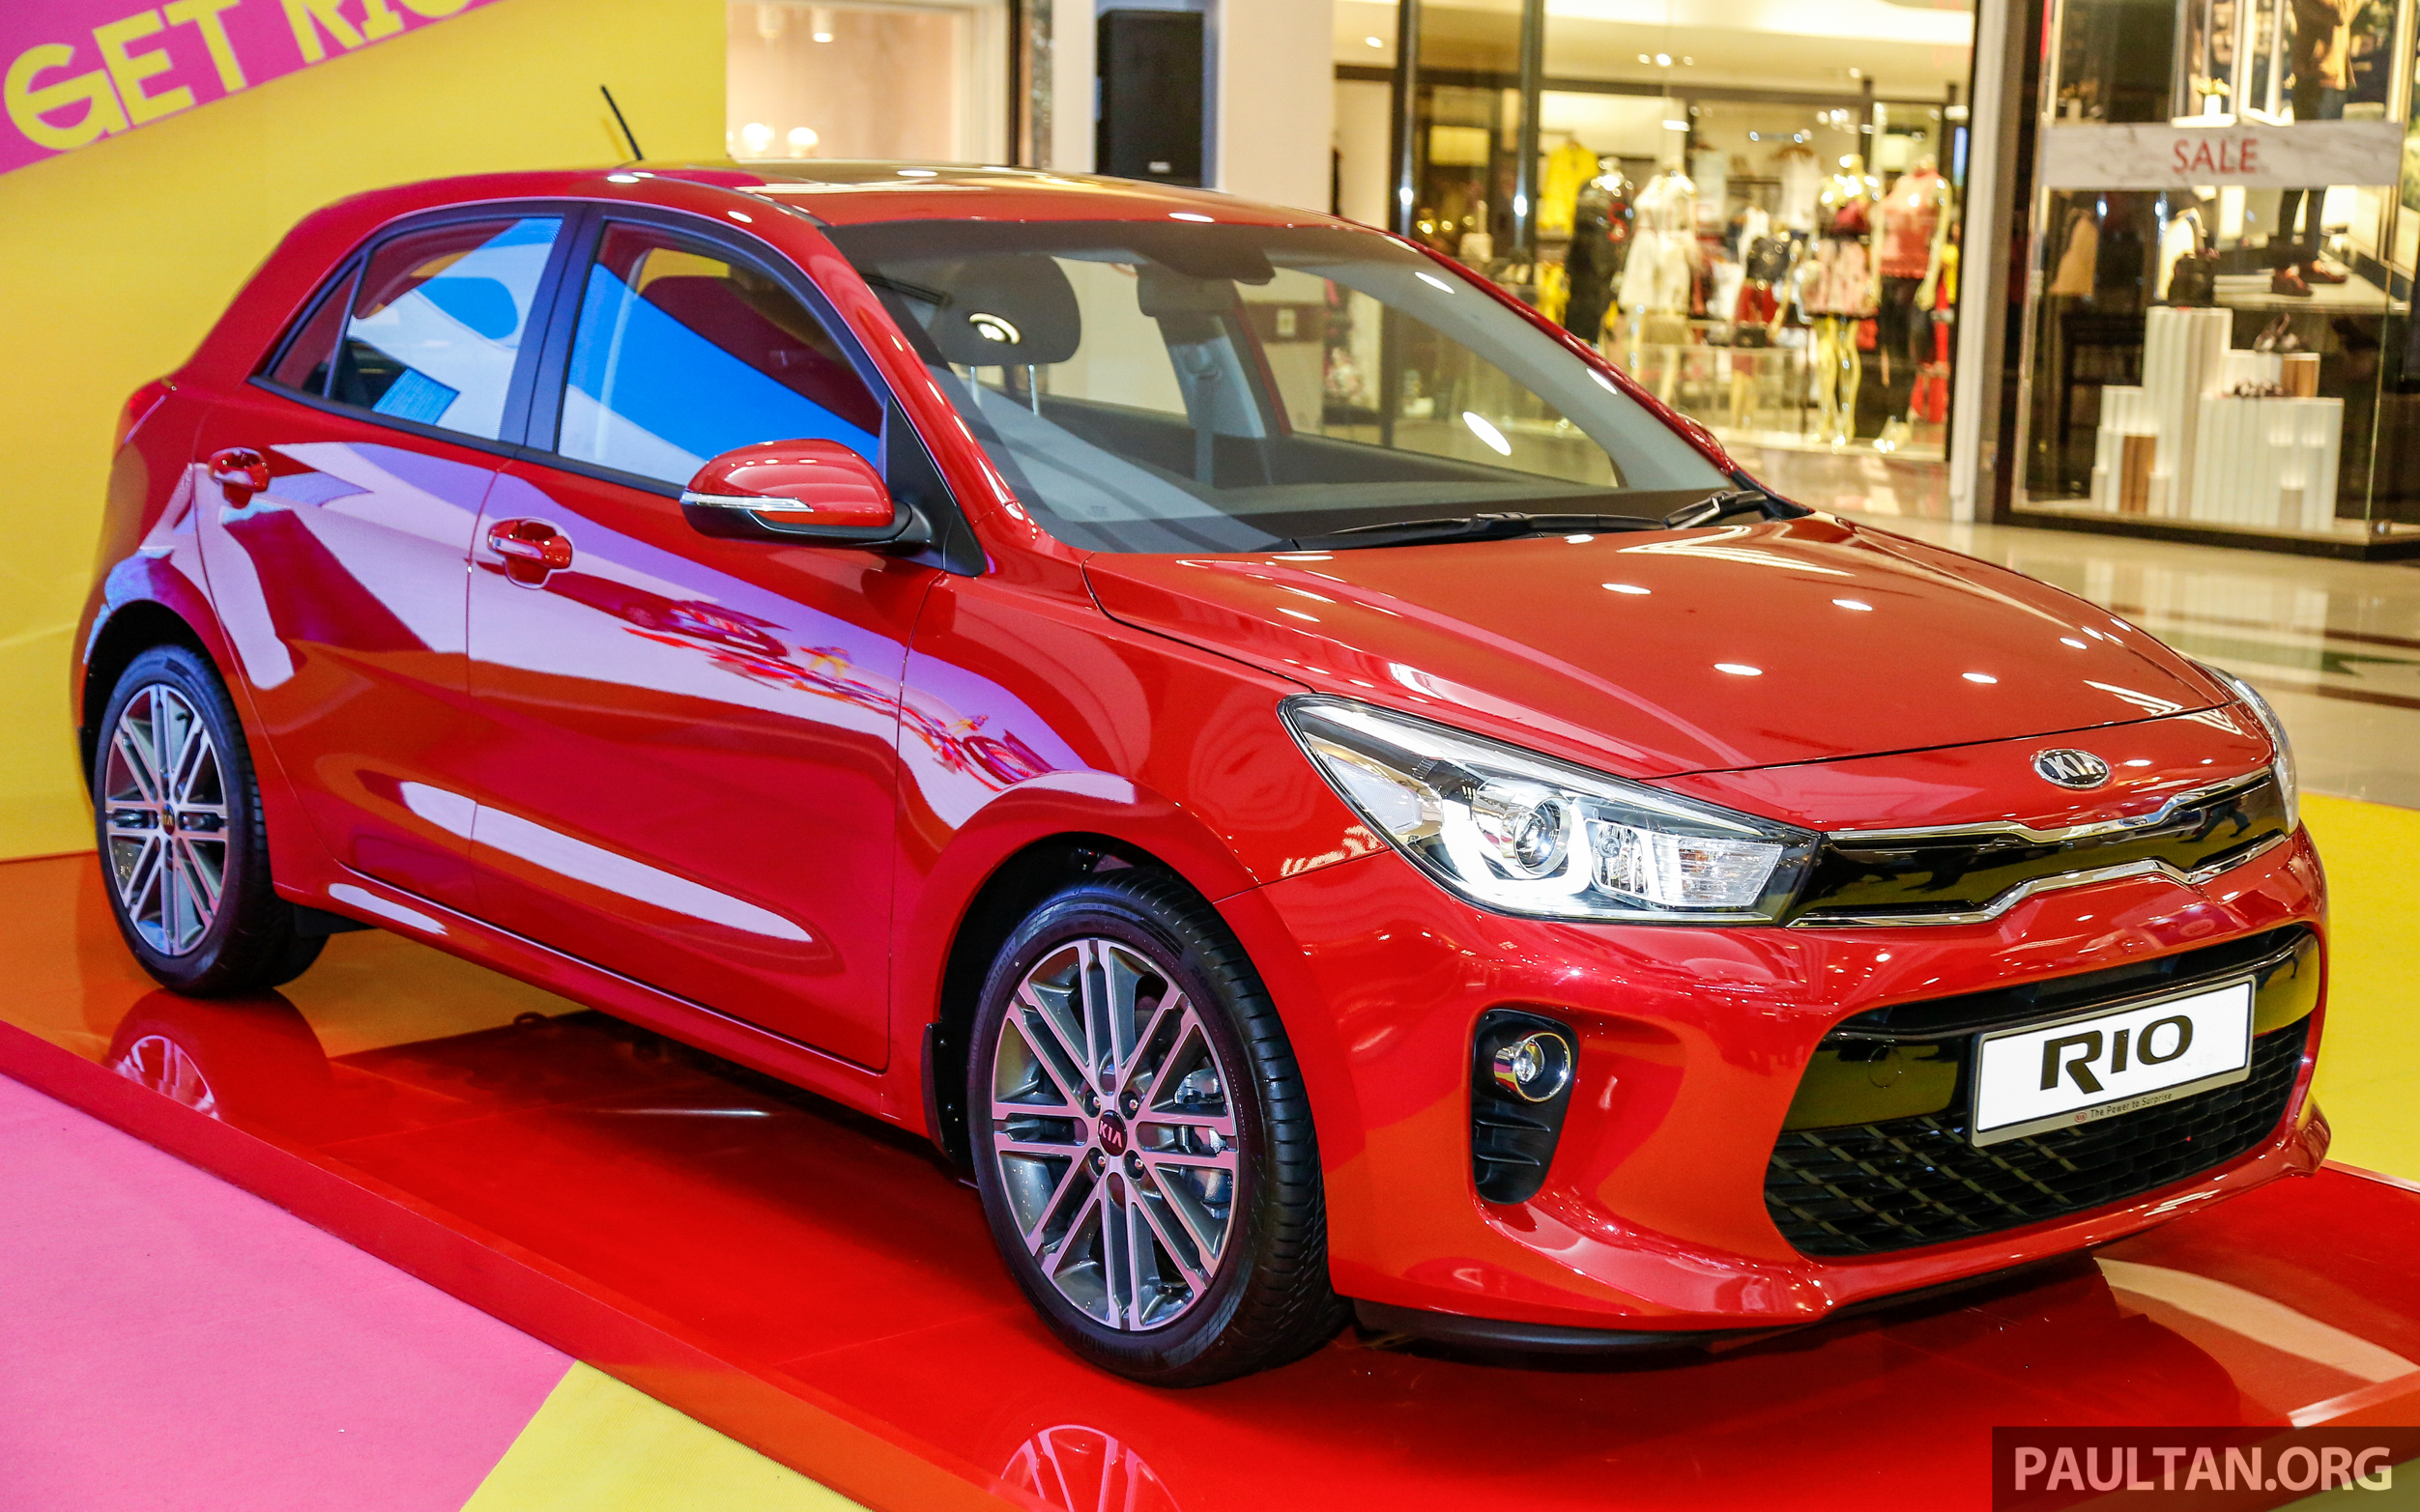 2017 kia rio 1 4 mpi launched in malaysia rm80k image 685968. Black Bedroom Furniture Sets. Home Design Ideas